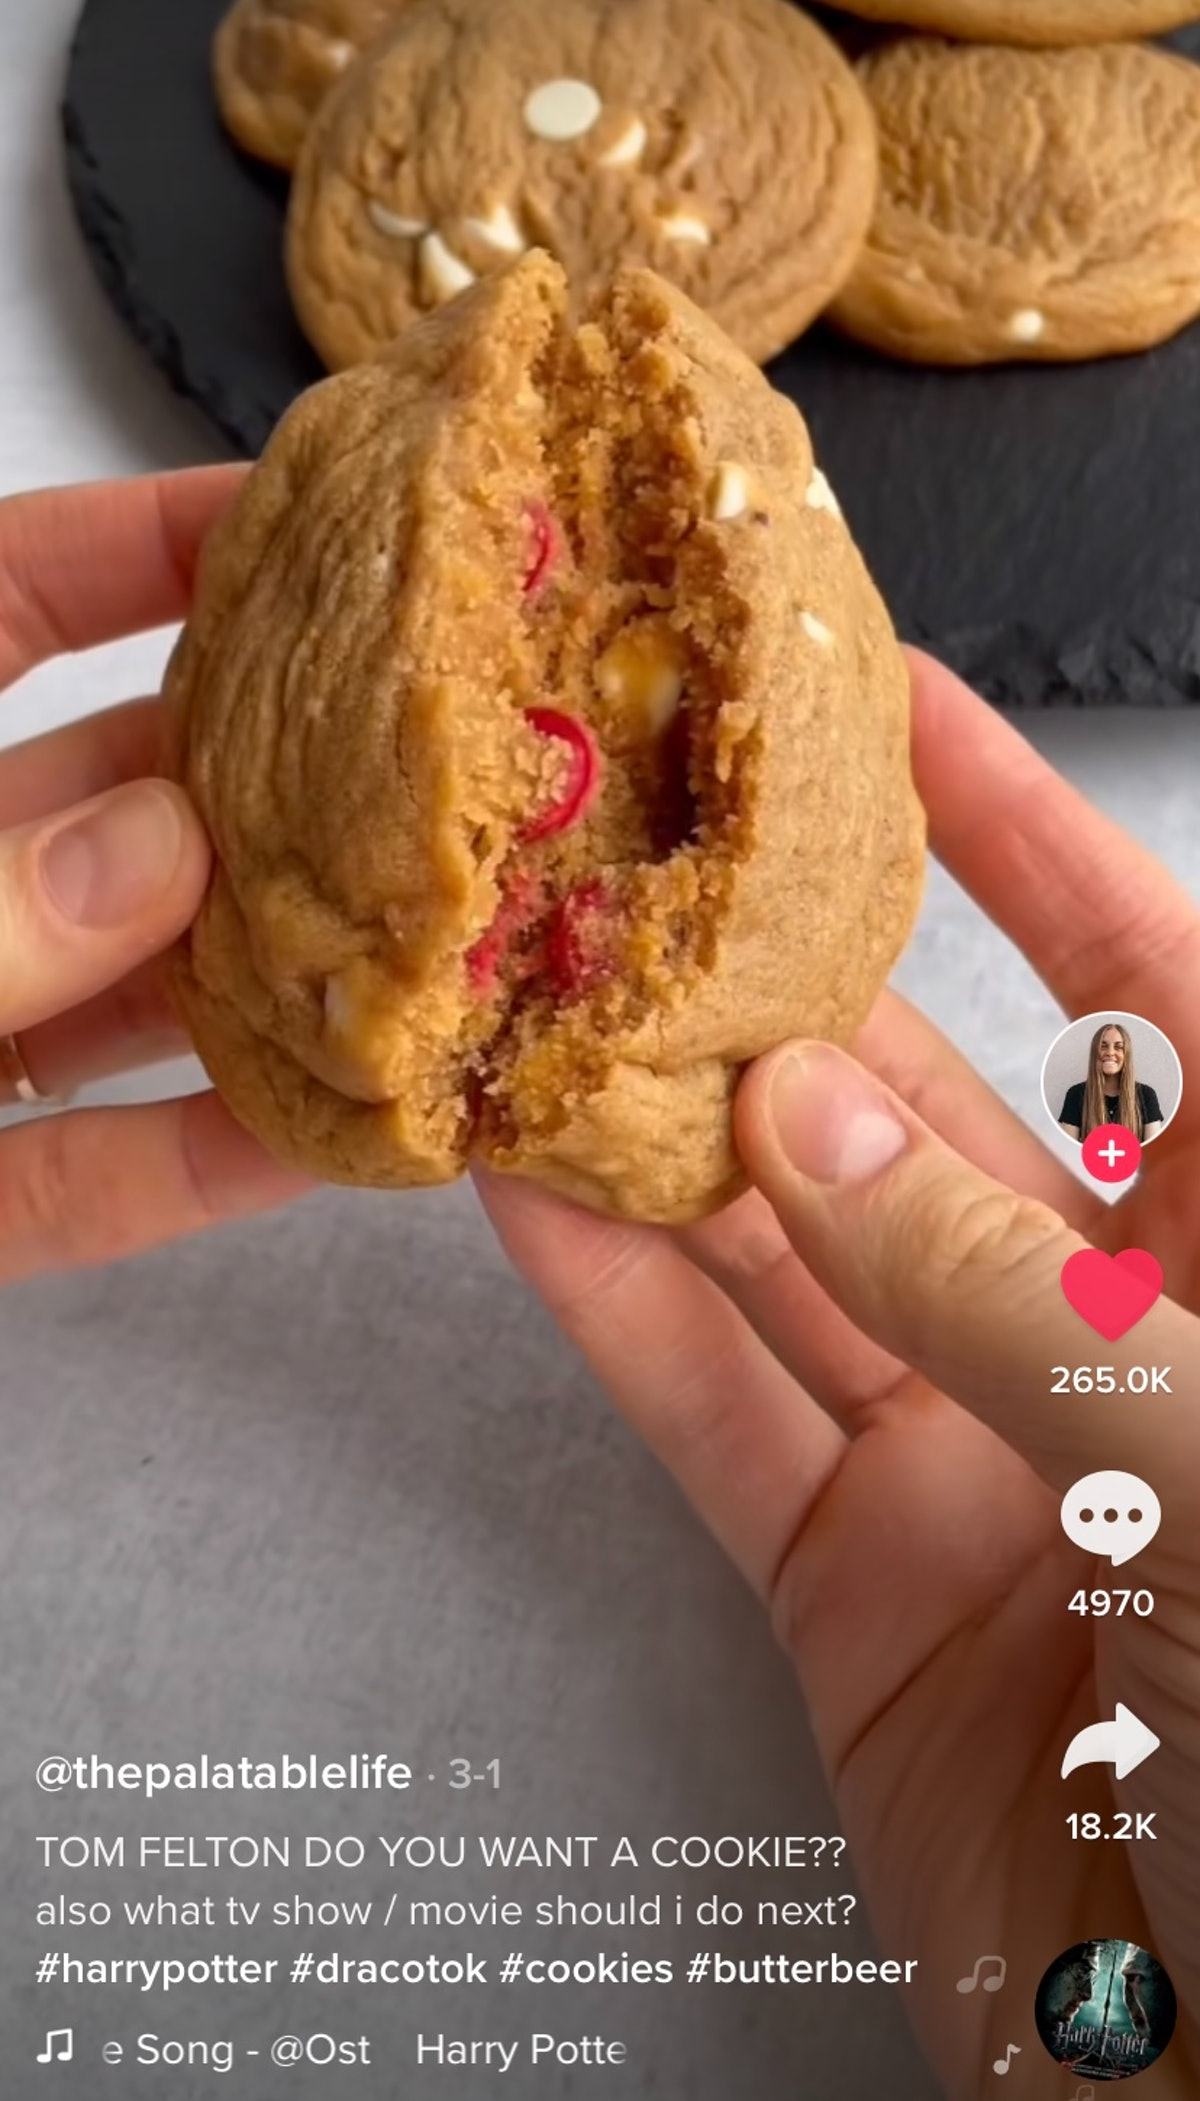 A woman breaks apart a butter beer 'Harry Potter' cookie with red M&M's inside.